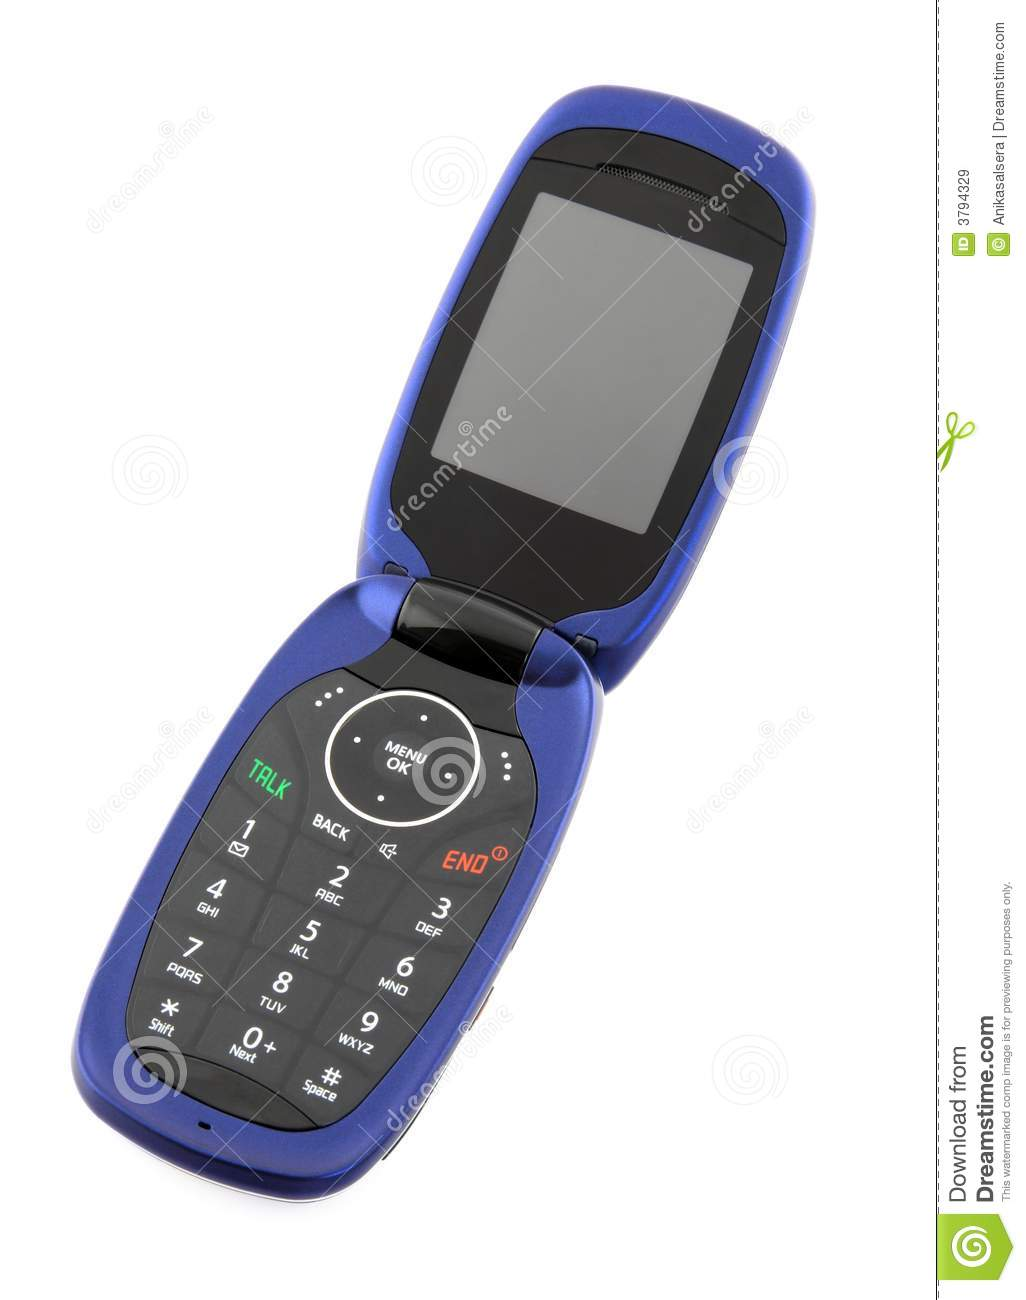 blue clamshell cell phone royalty free stock images   image 3794329